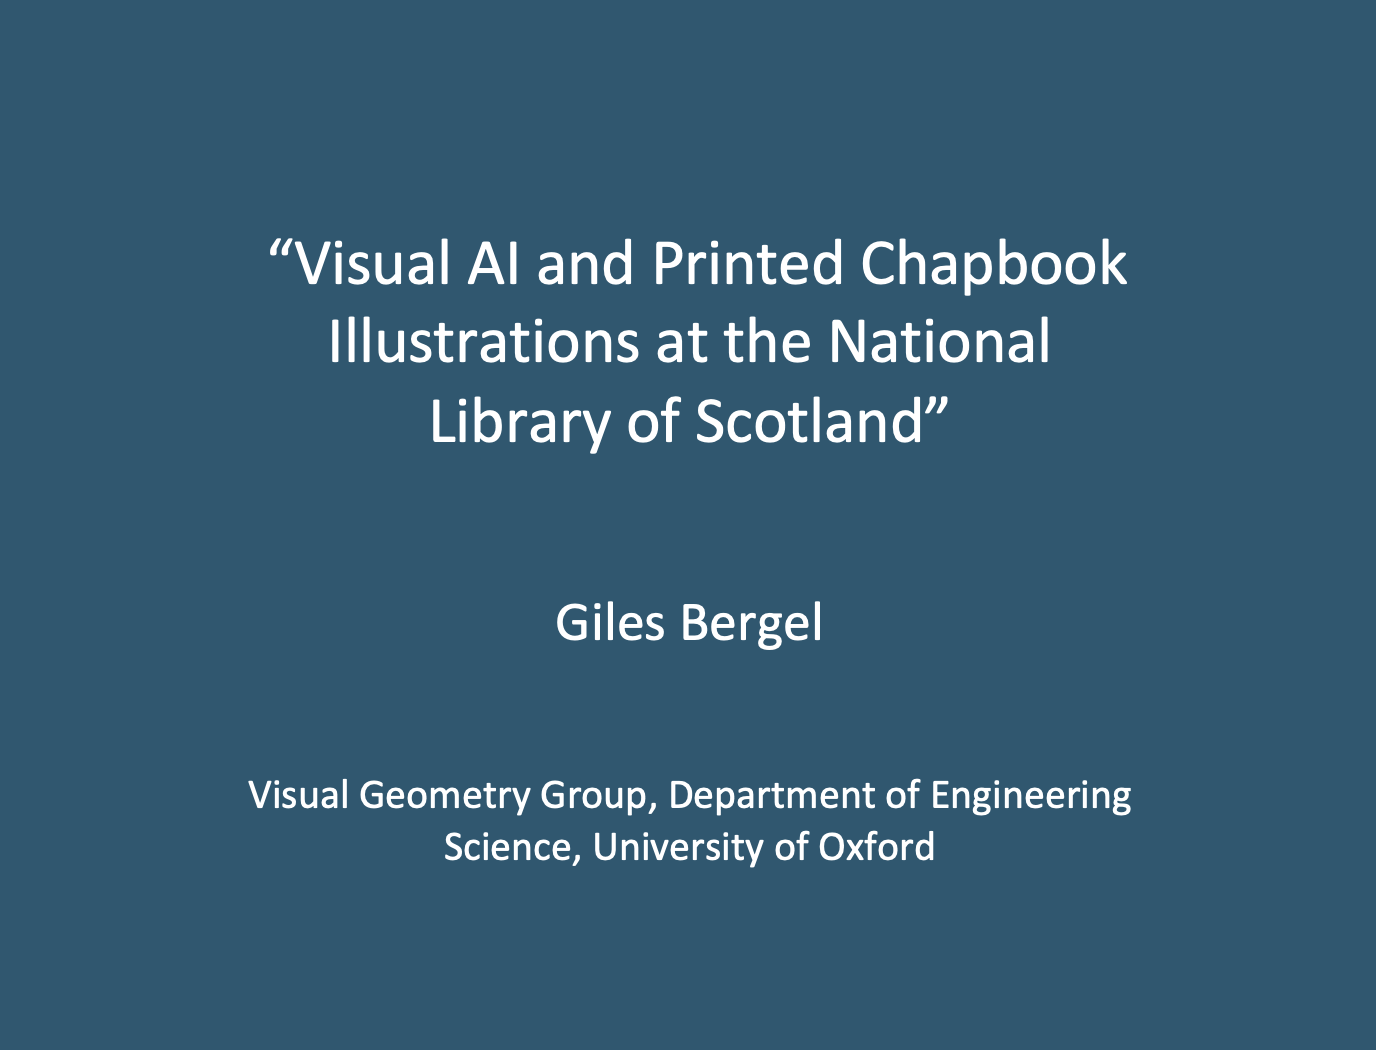 """Workshop 1: Giles Bergel, """"Visual AI and Printed Chapbook Illustrations at the National Library of Scotland"""""""